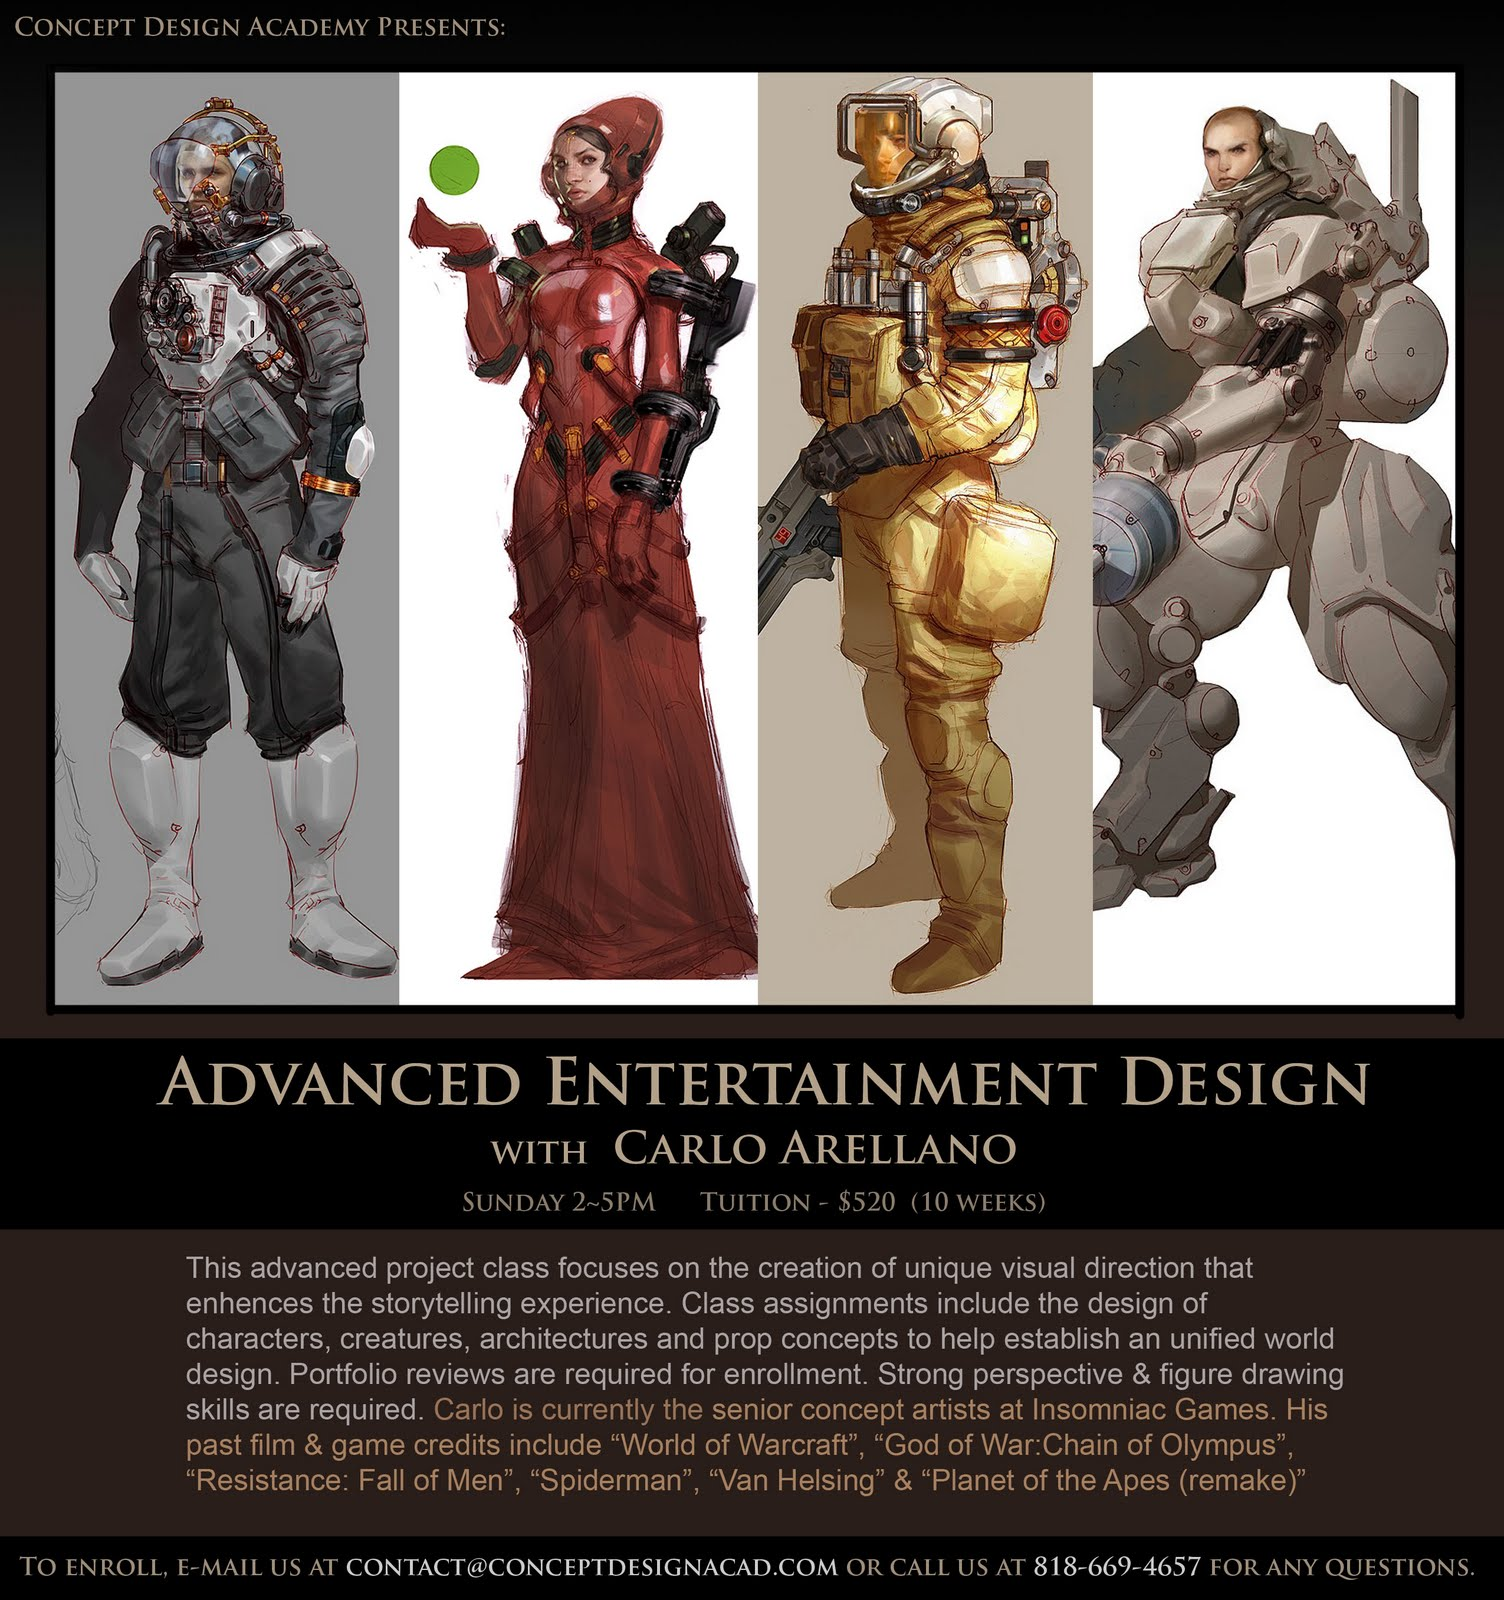 The Art Of Character Design With David Colman Volume 2 : Concept design academy fall enrollment status